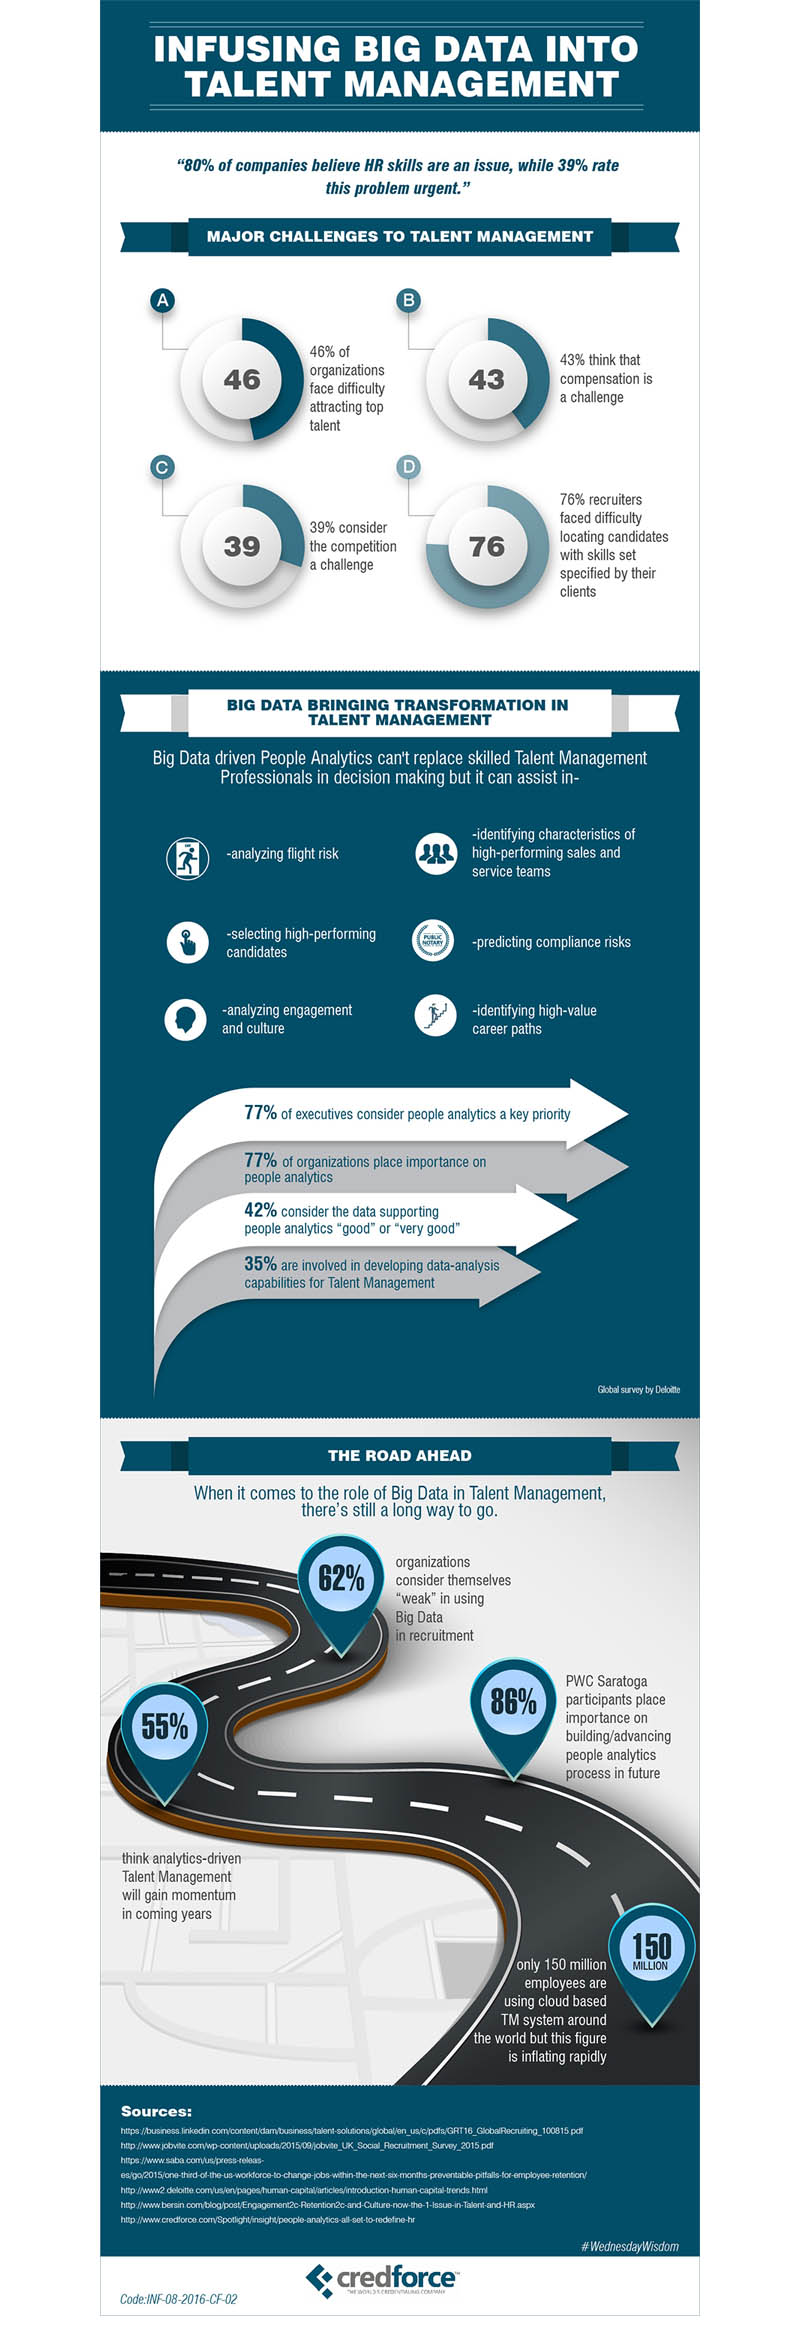 Infographic: Infusing Big Data into Talent Management